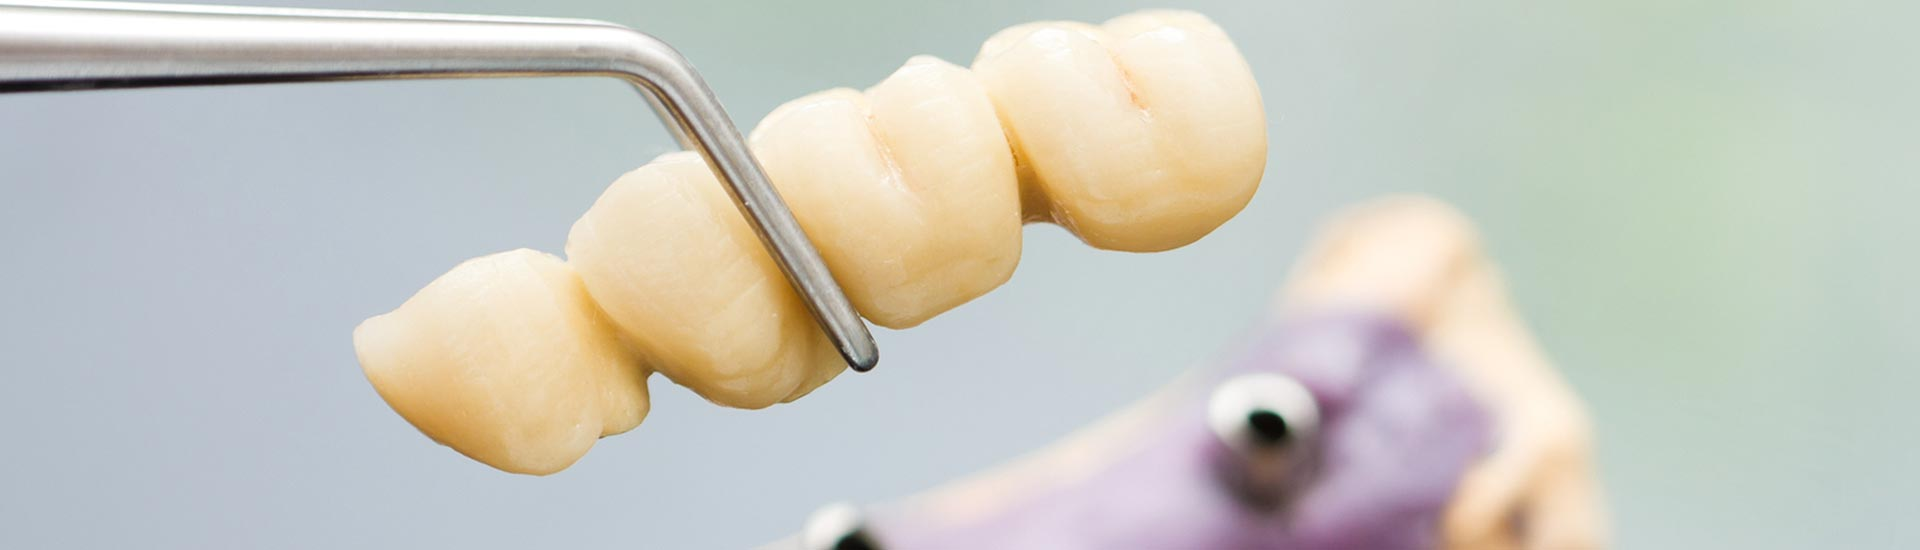 Change your look dental implant and get attractive teeth